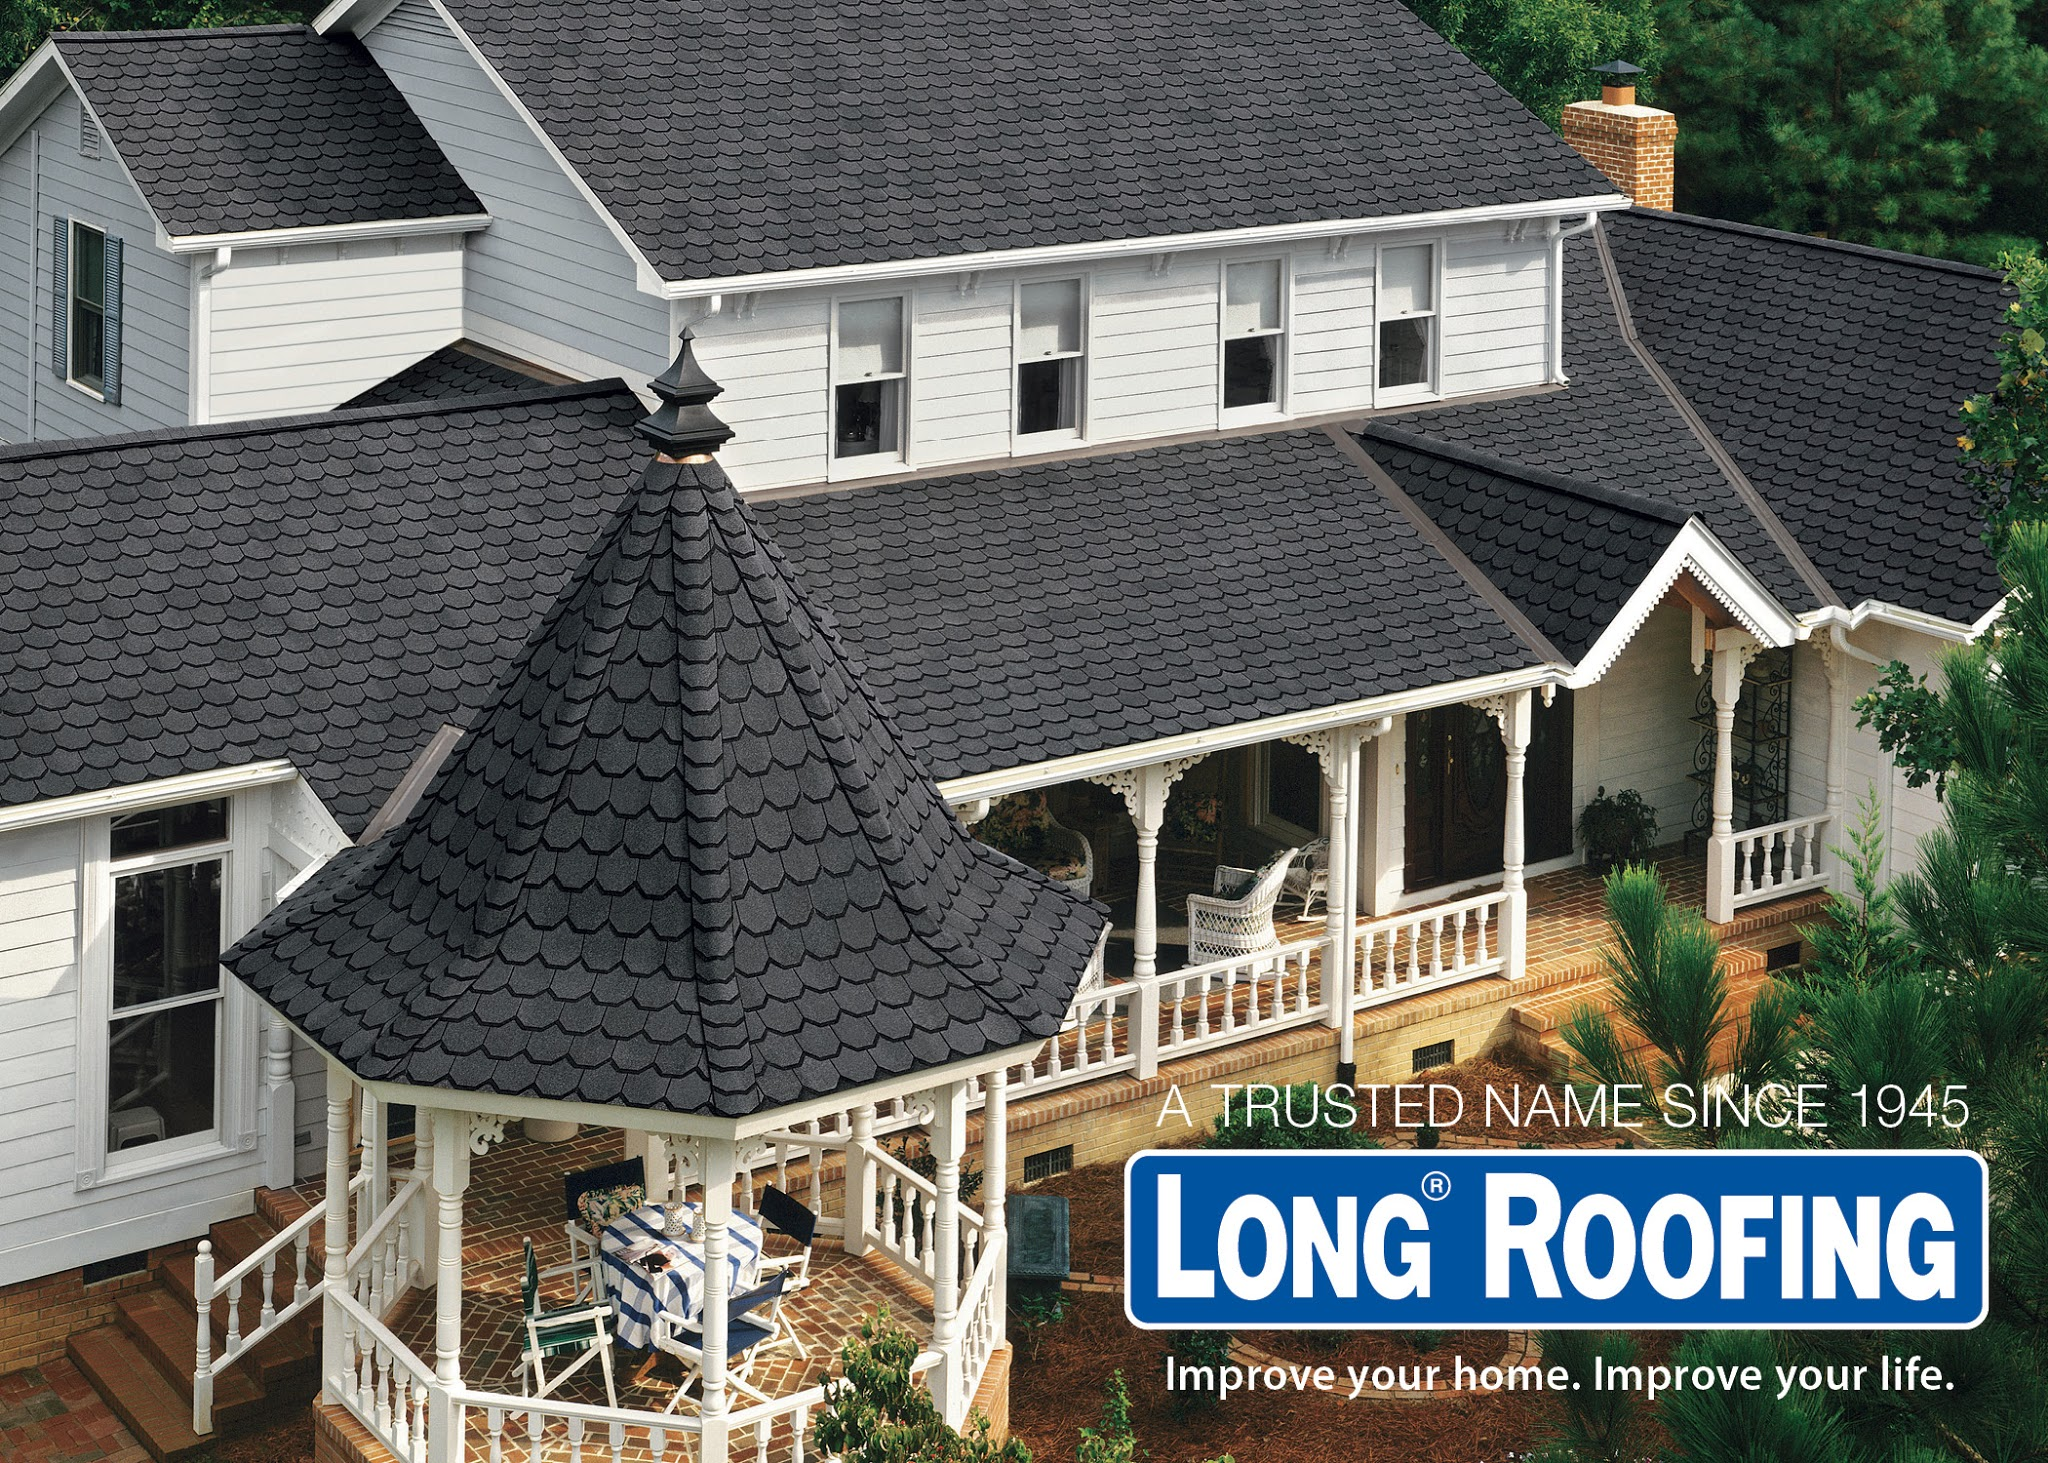 Long Roofing image 10